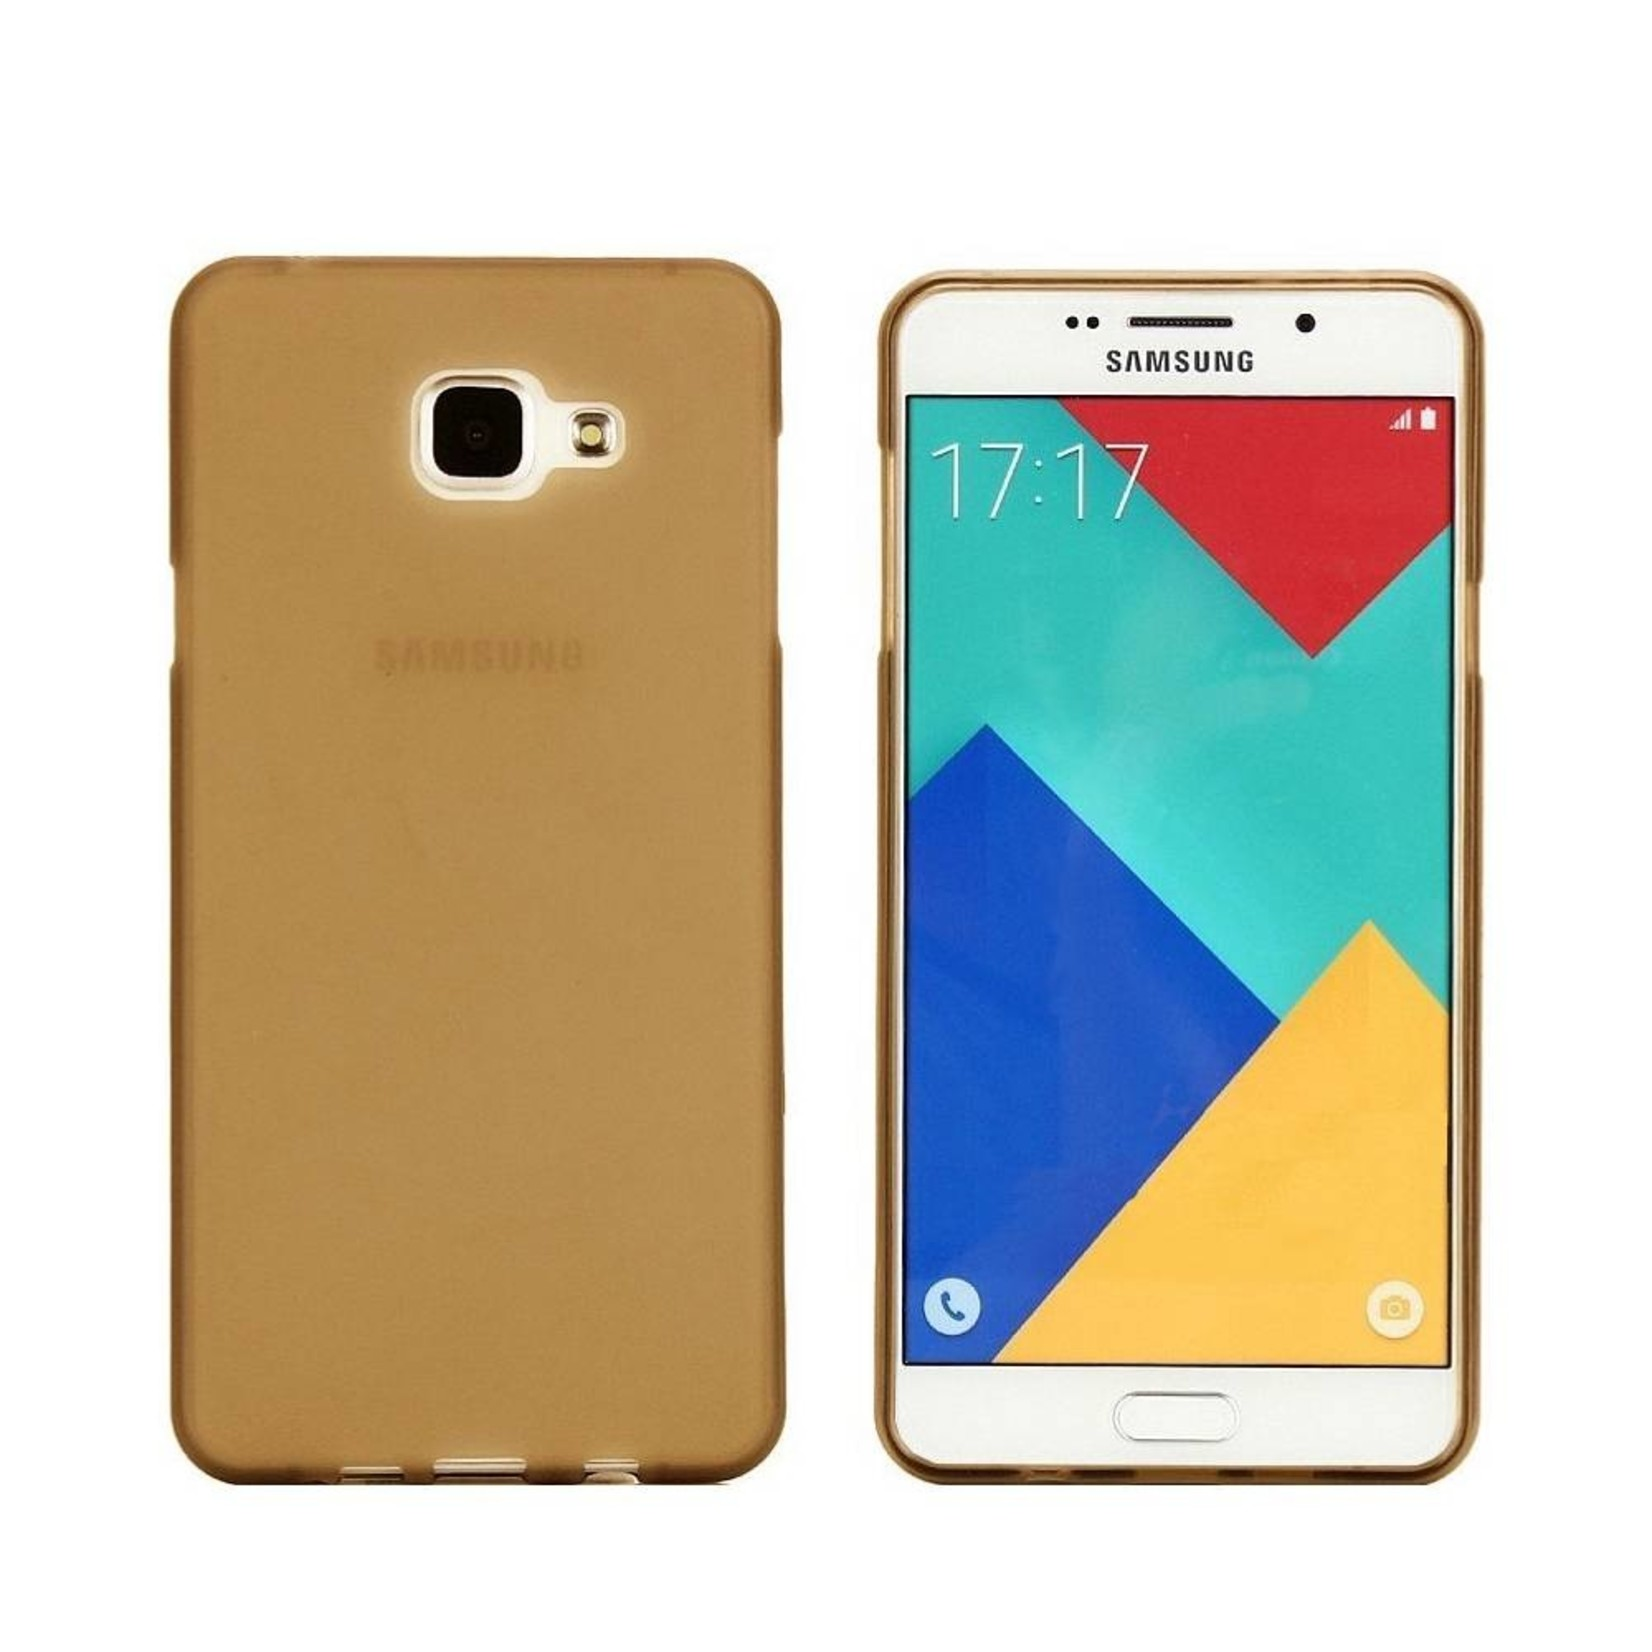 Colorfone Hoesje CoolSkin3T voor Samsung Galaxy A7 2016 Tr. Goud